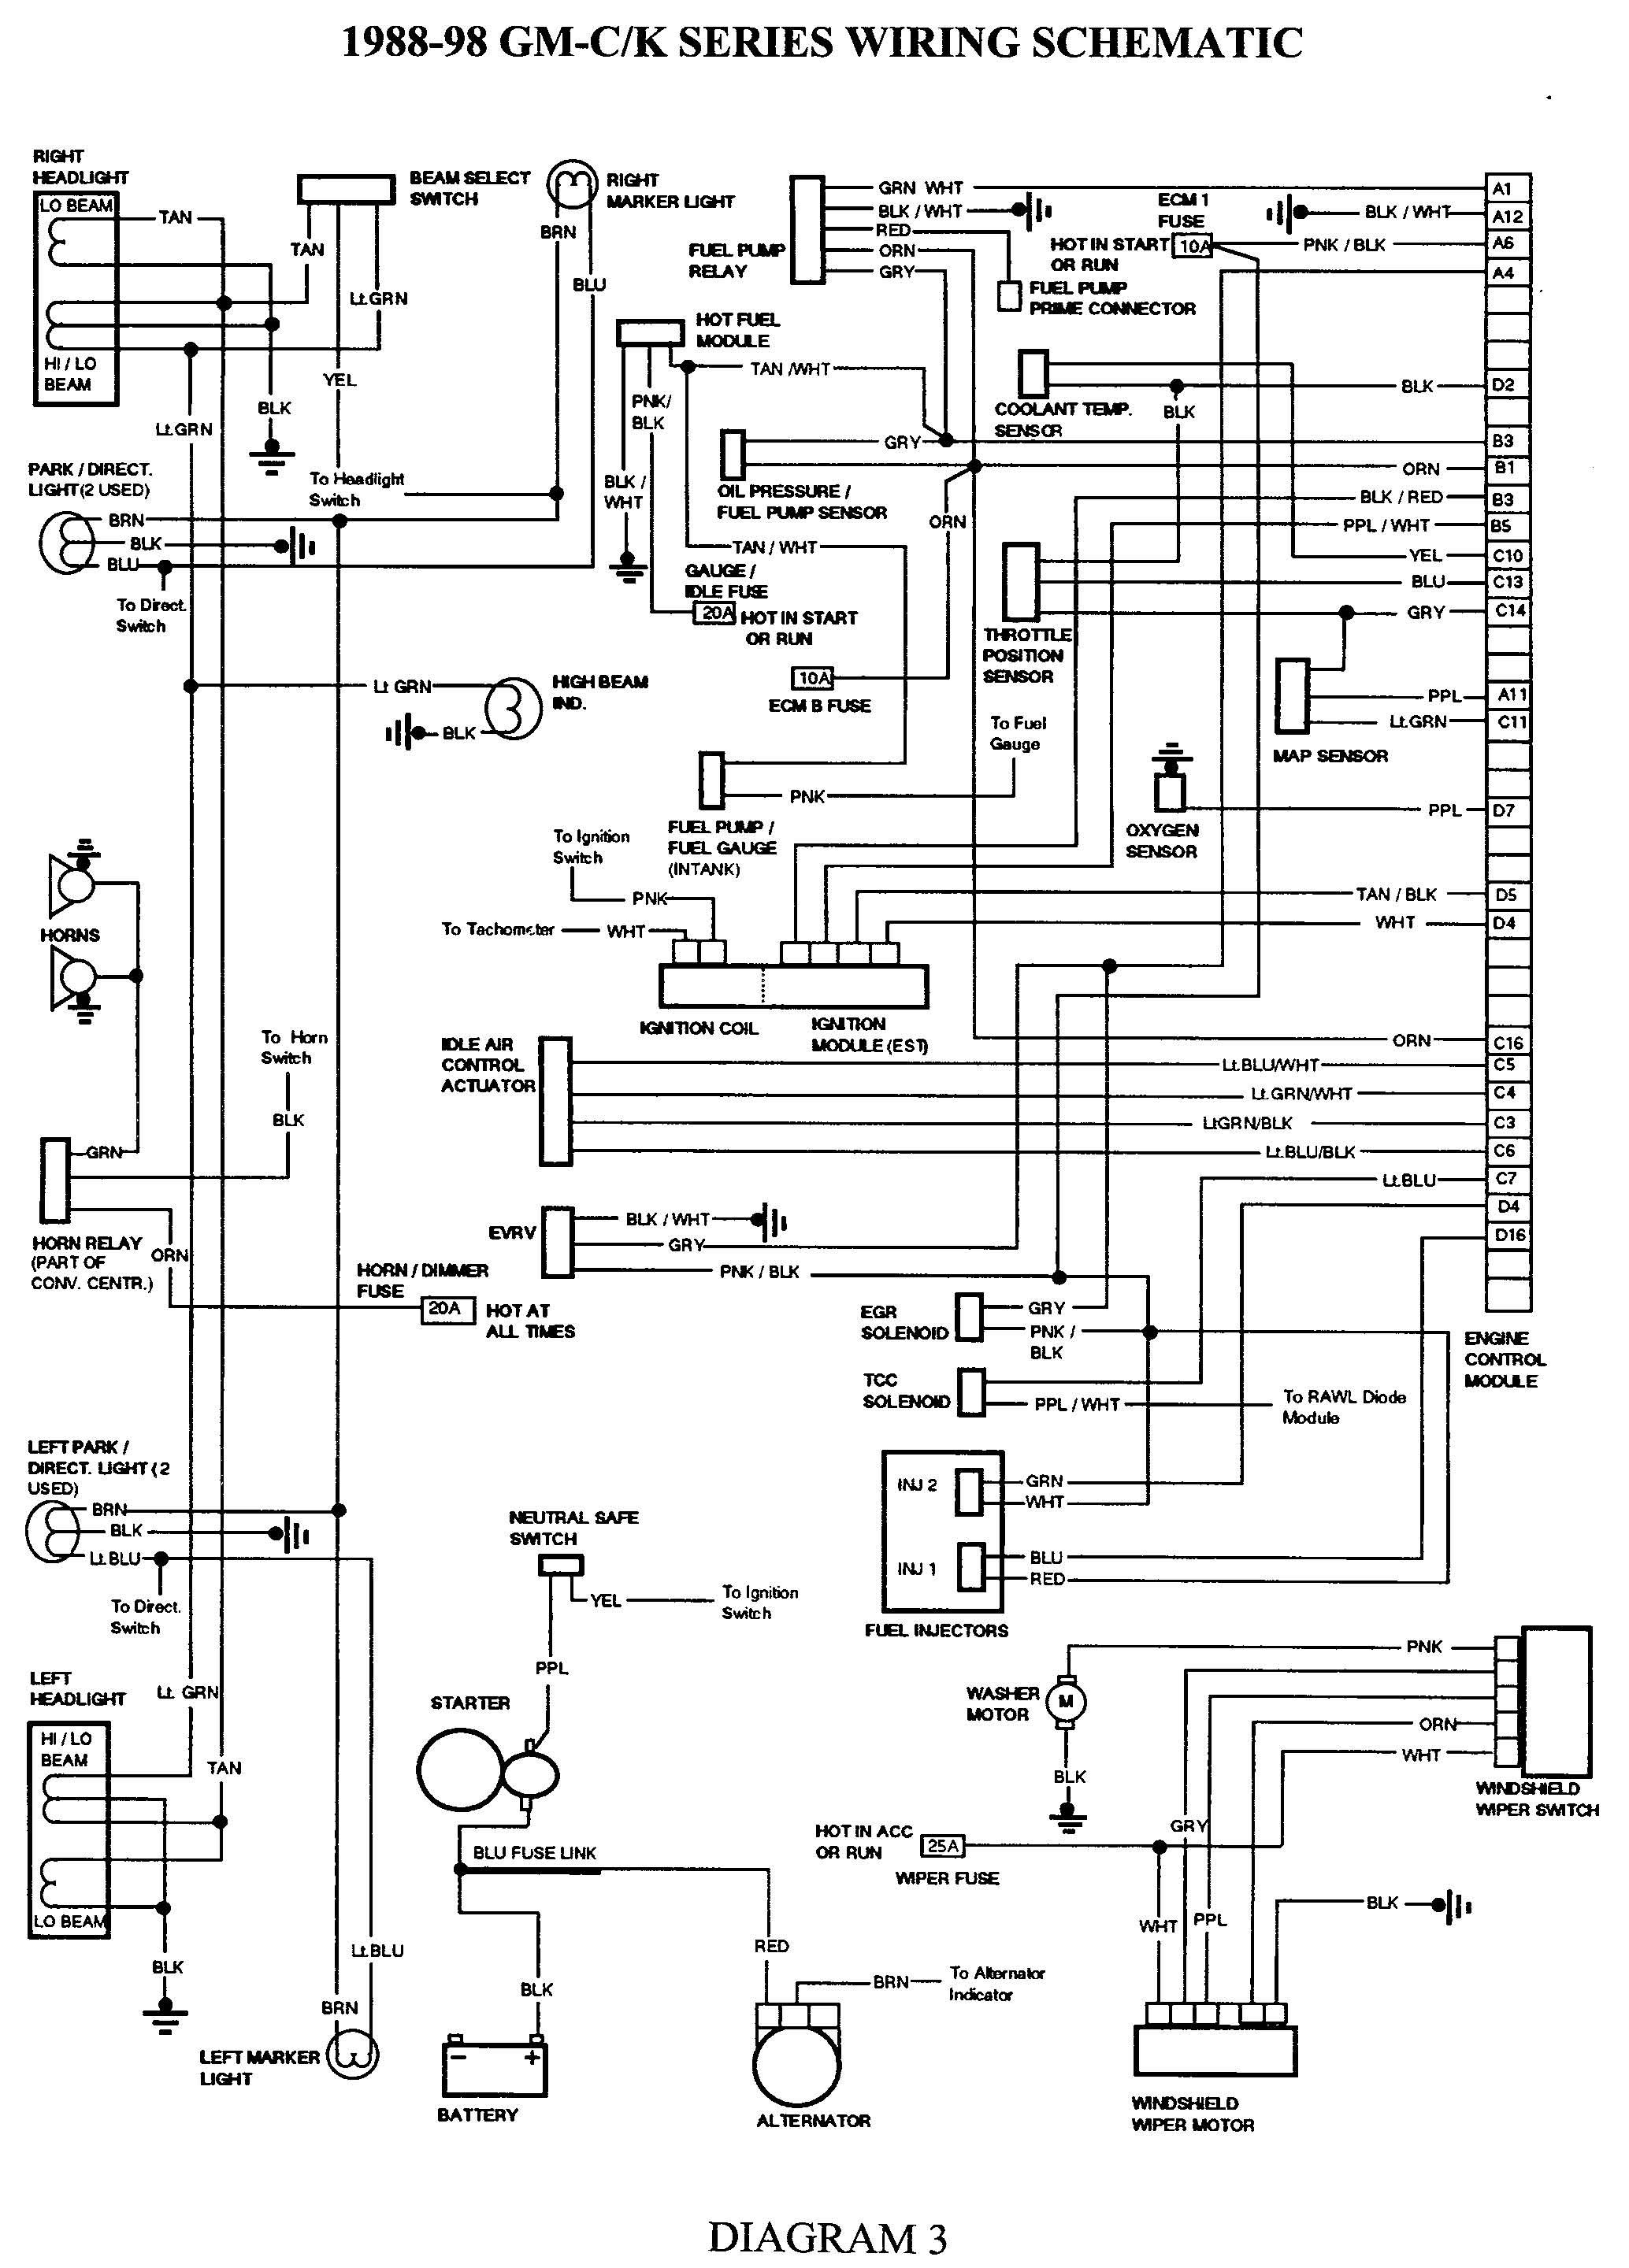 gmc truck wiring diagrams on gm wiring harness diagram 88 98 kc gm wiring harness stereo gm wiring harness [ 2068 x 2880 Pixel ]